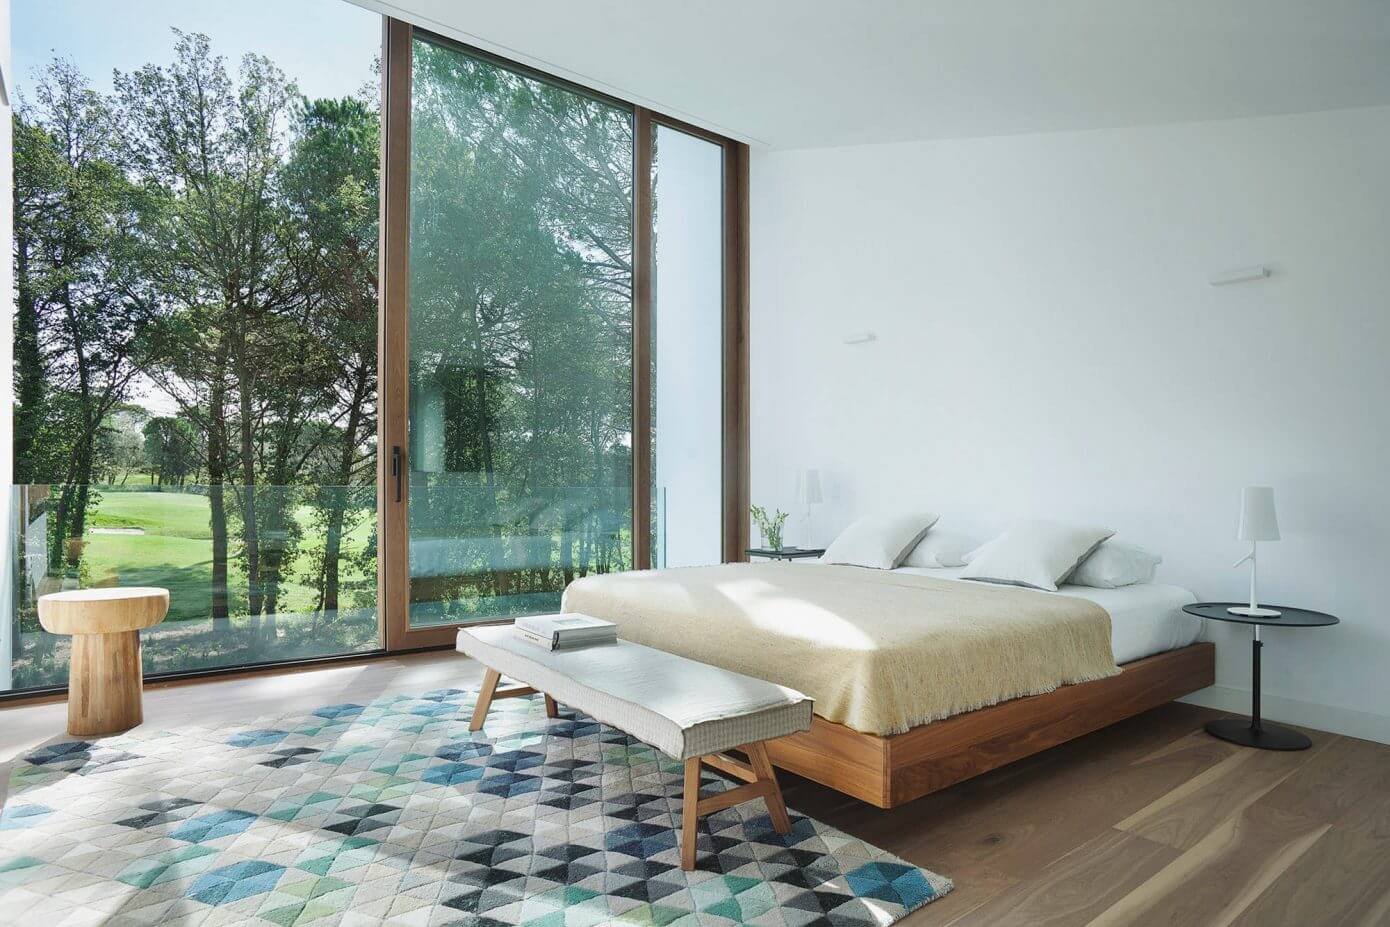 Residence in La Pineda by Jaime Prous Architects